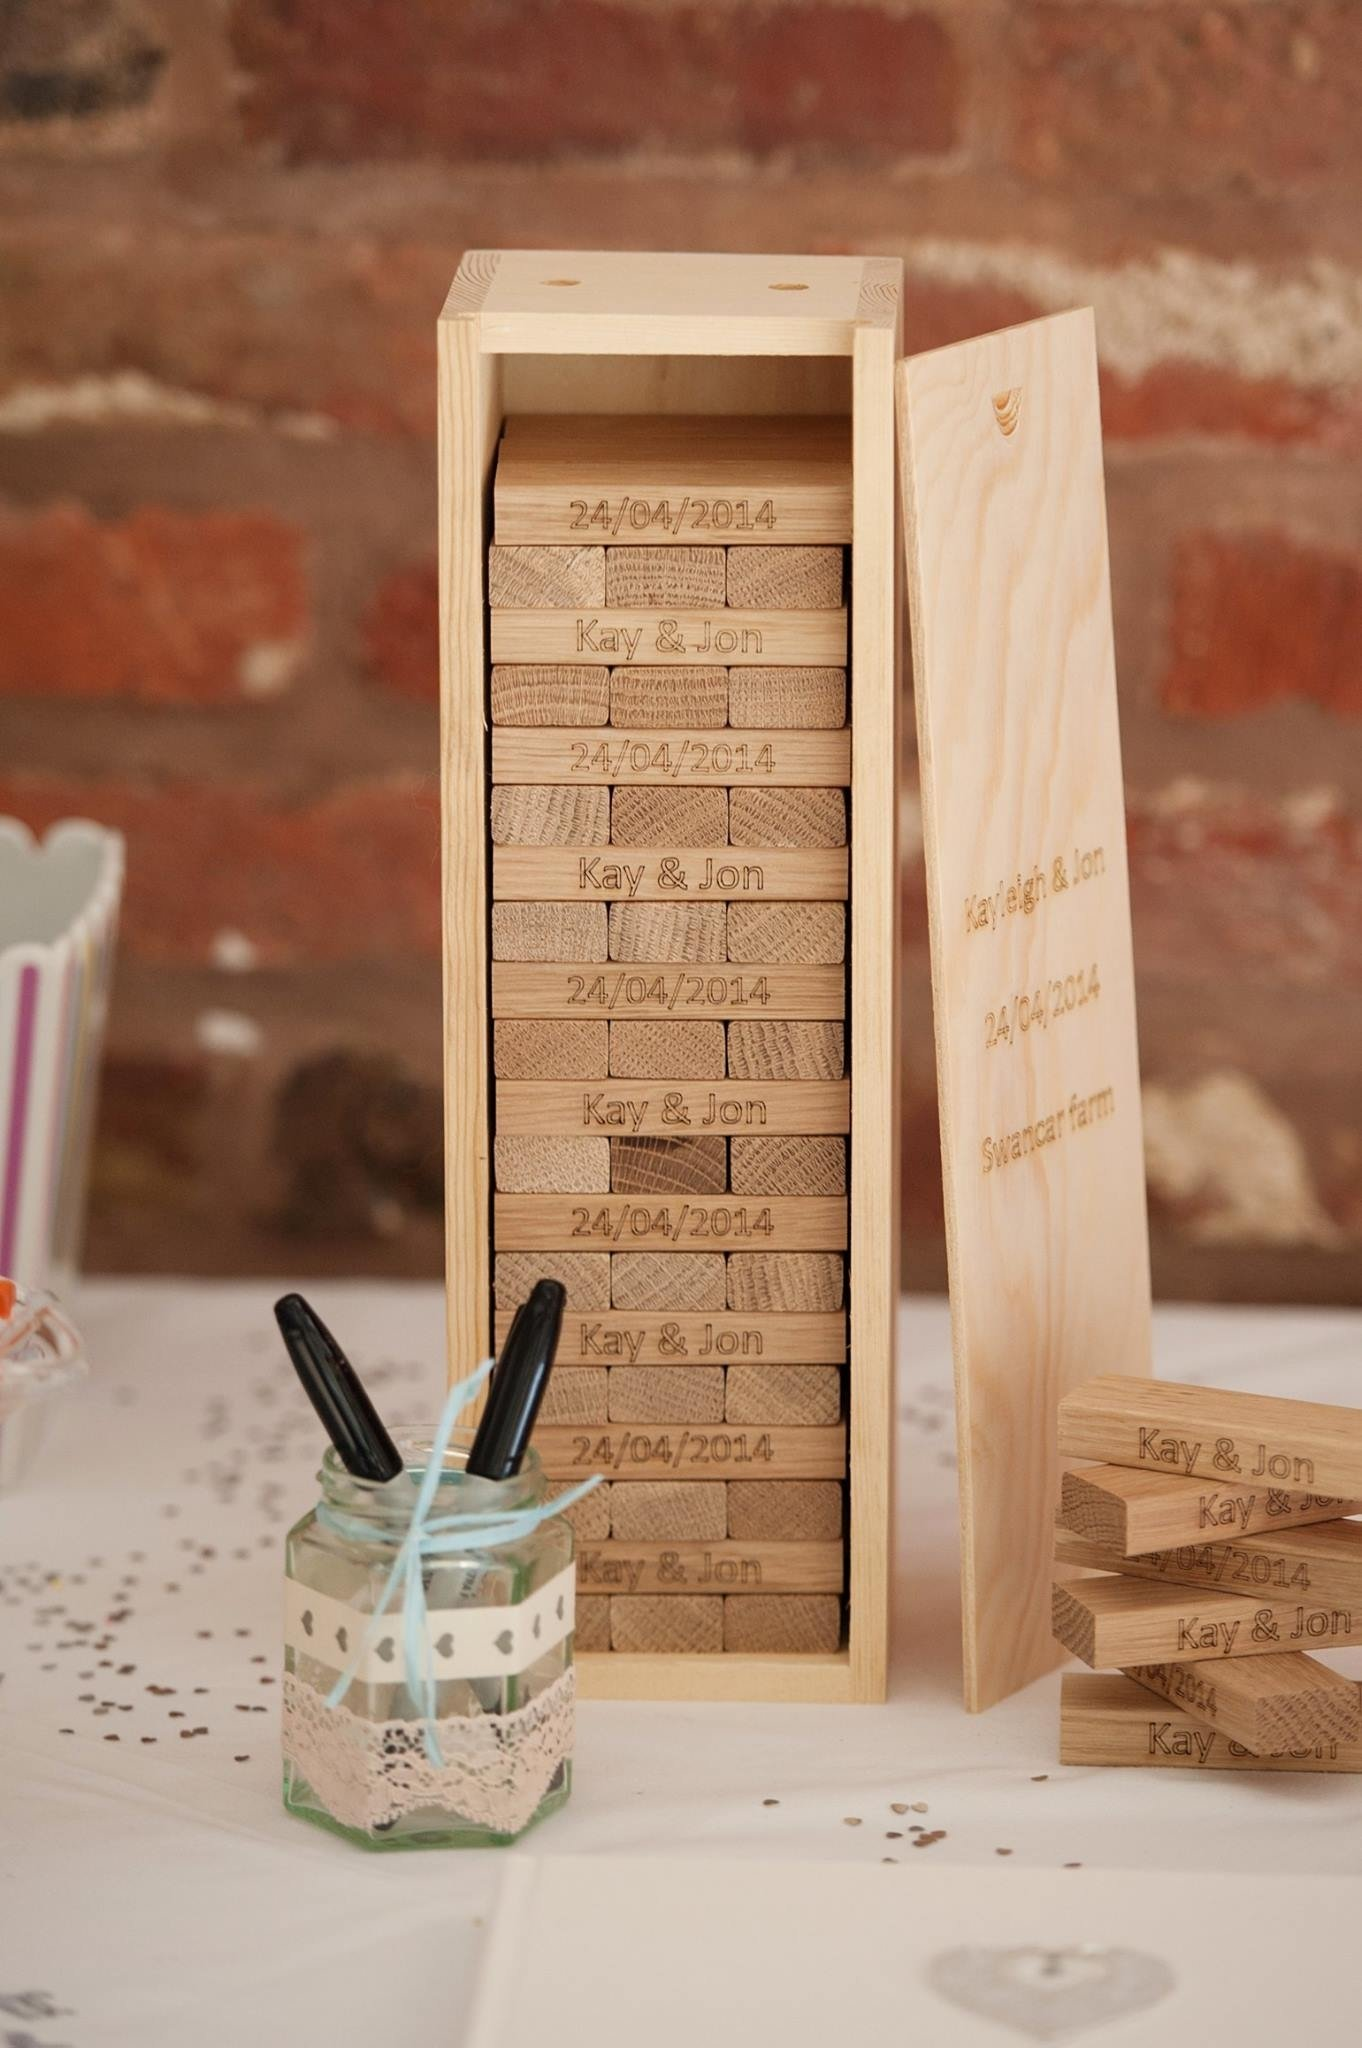 10 Most Recommended Alternative Wedding Guest Book Ideas 4 alternative wedding guest books to wow your guests